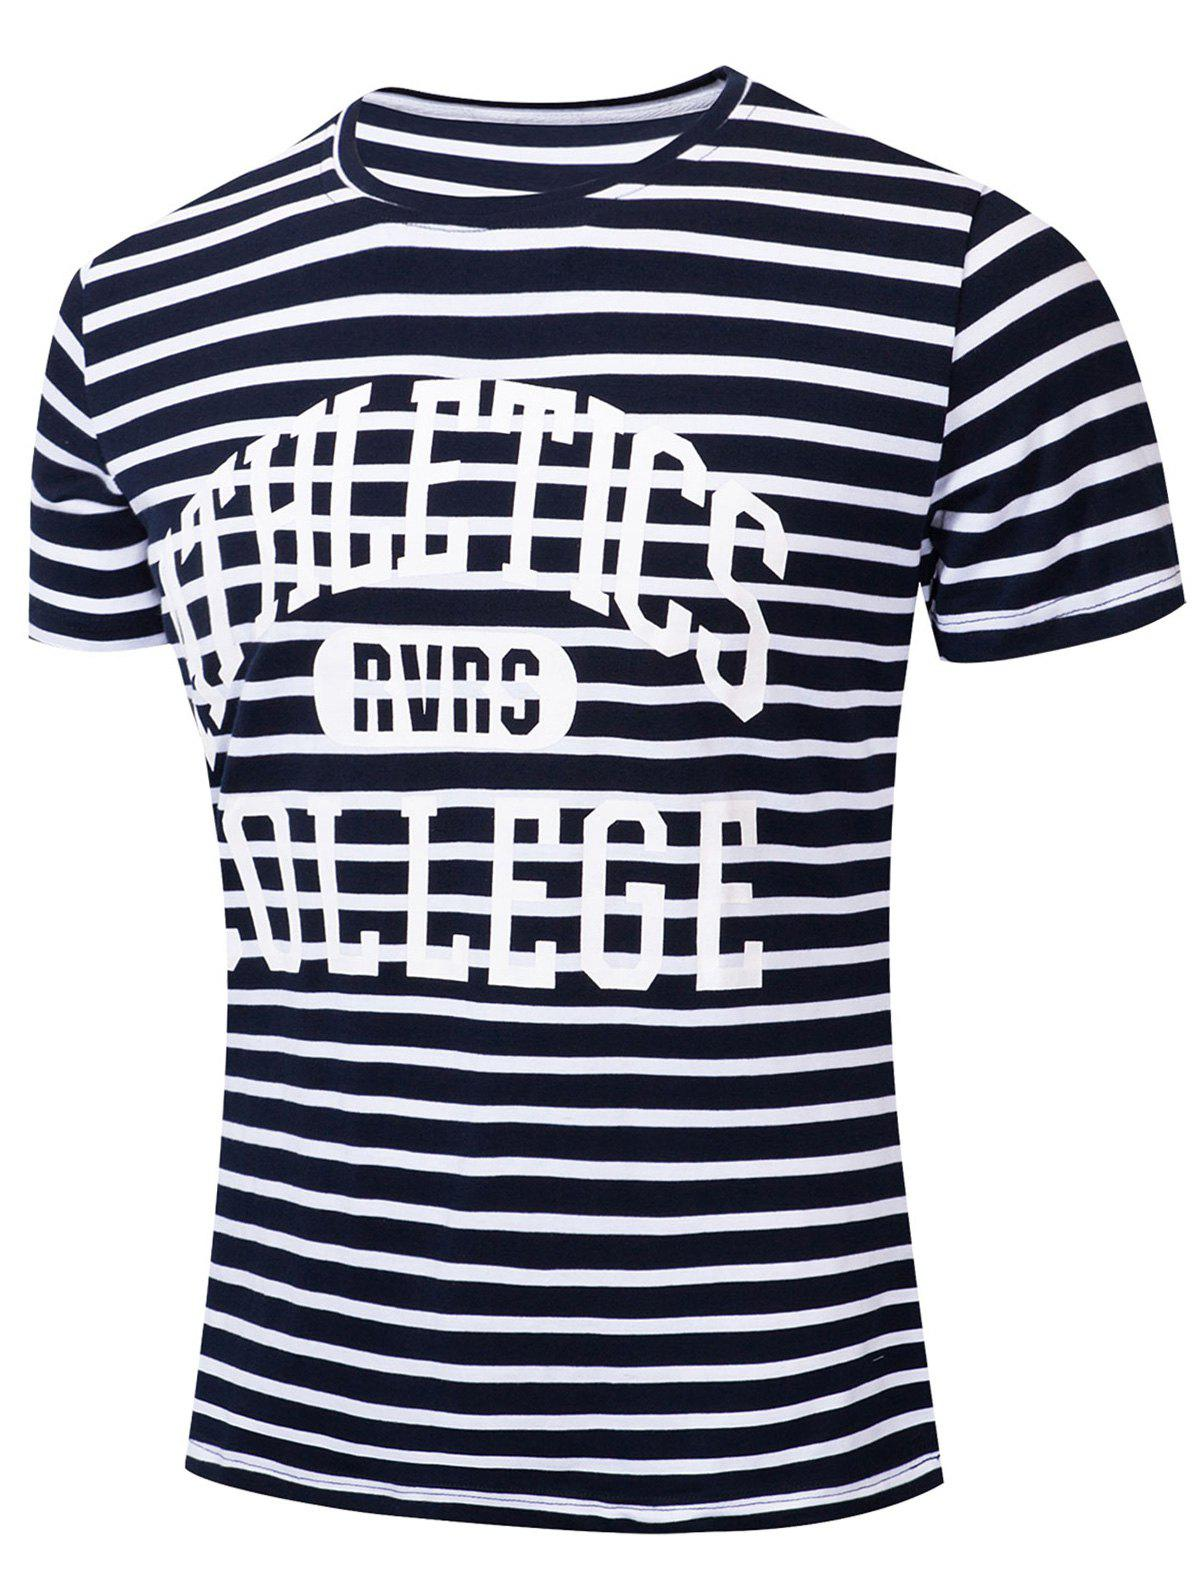 Shop Casual Letter Striped Printed Short Sleeve T-shirt